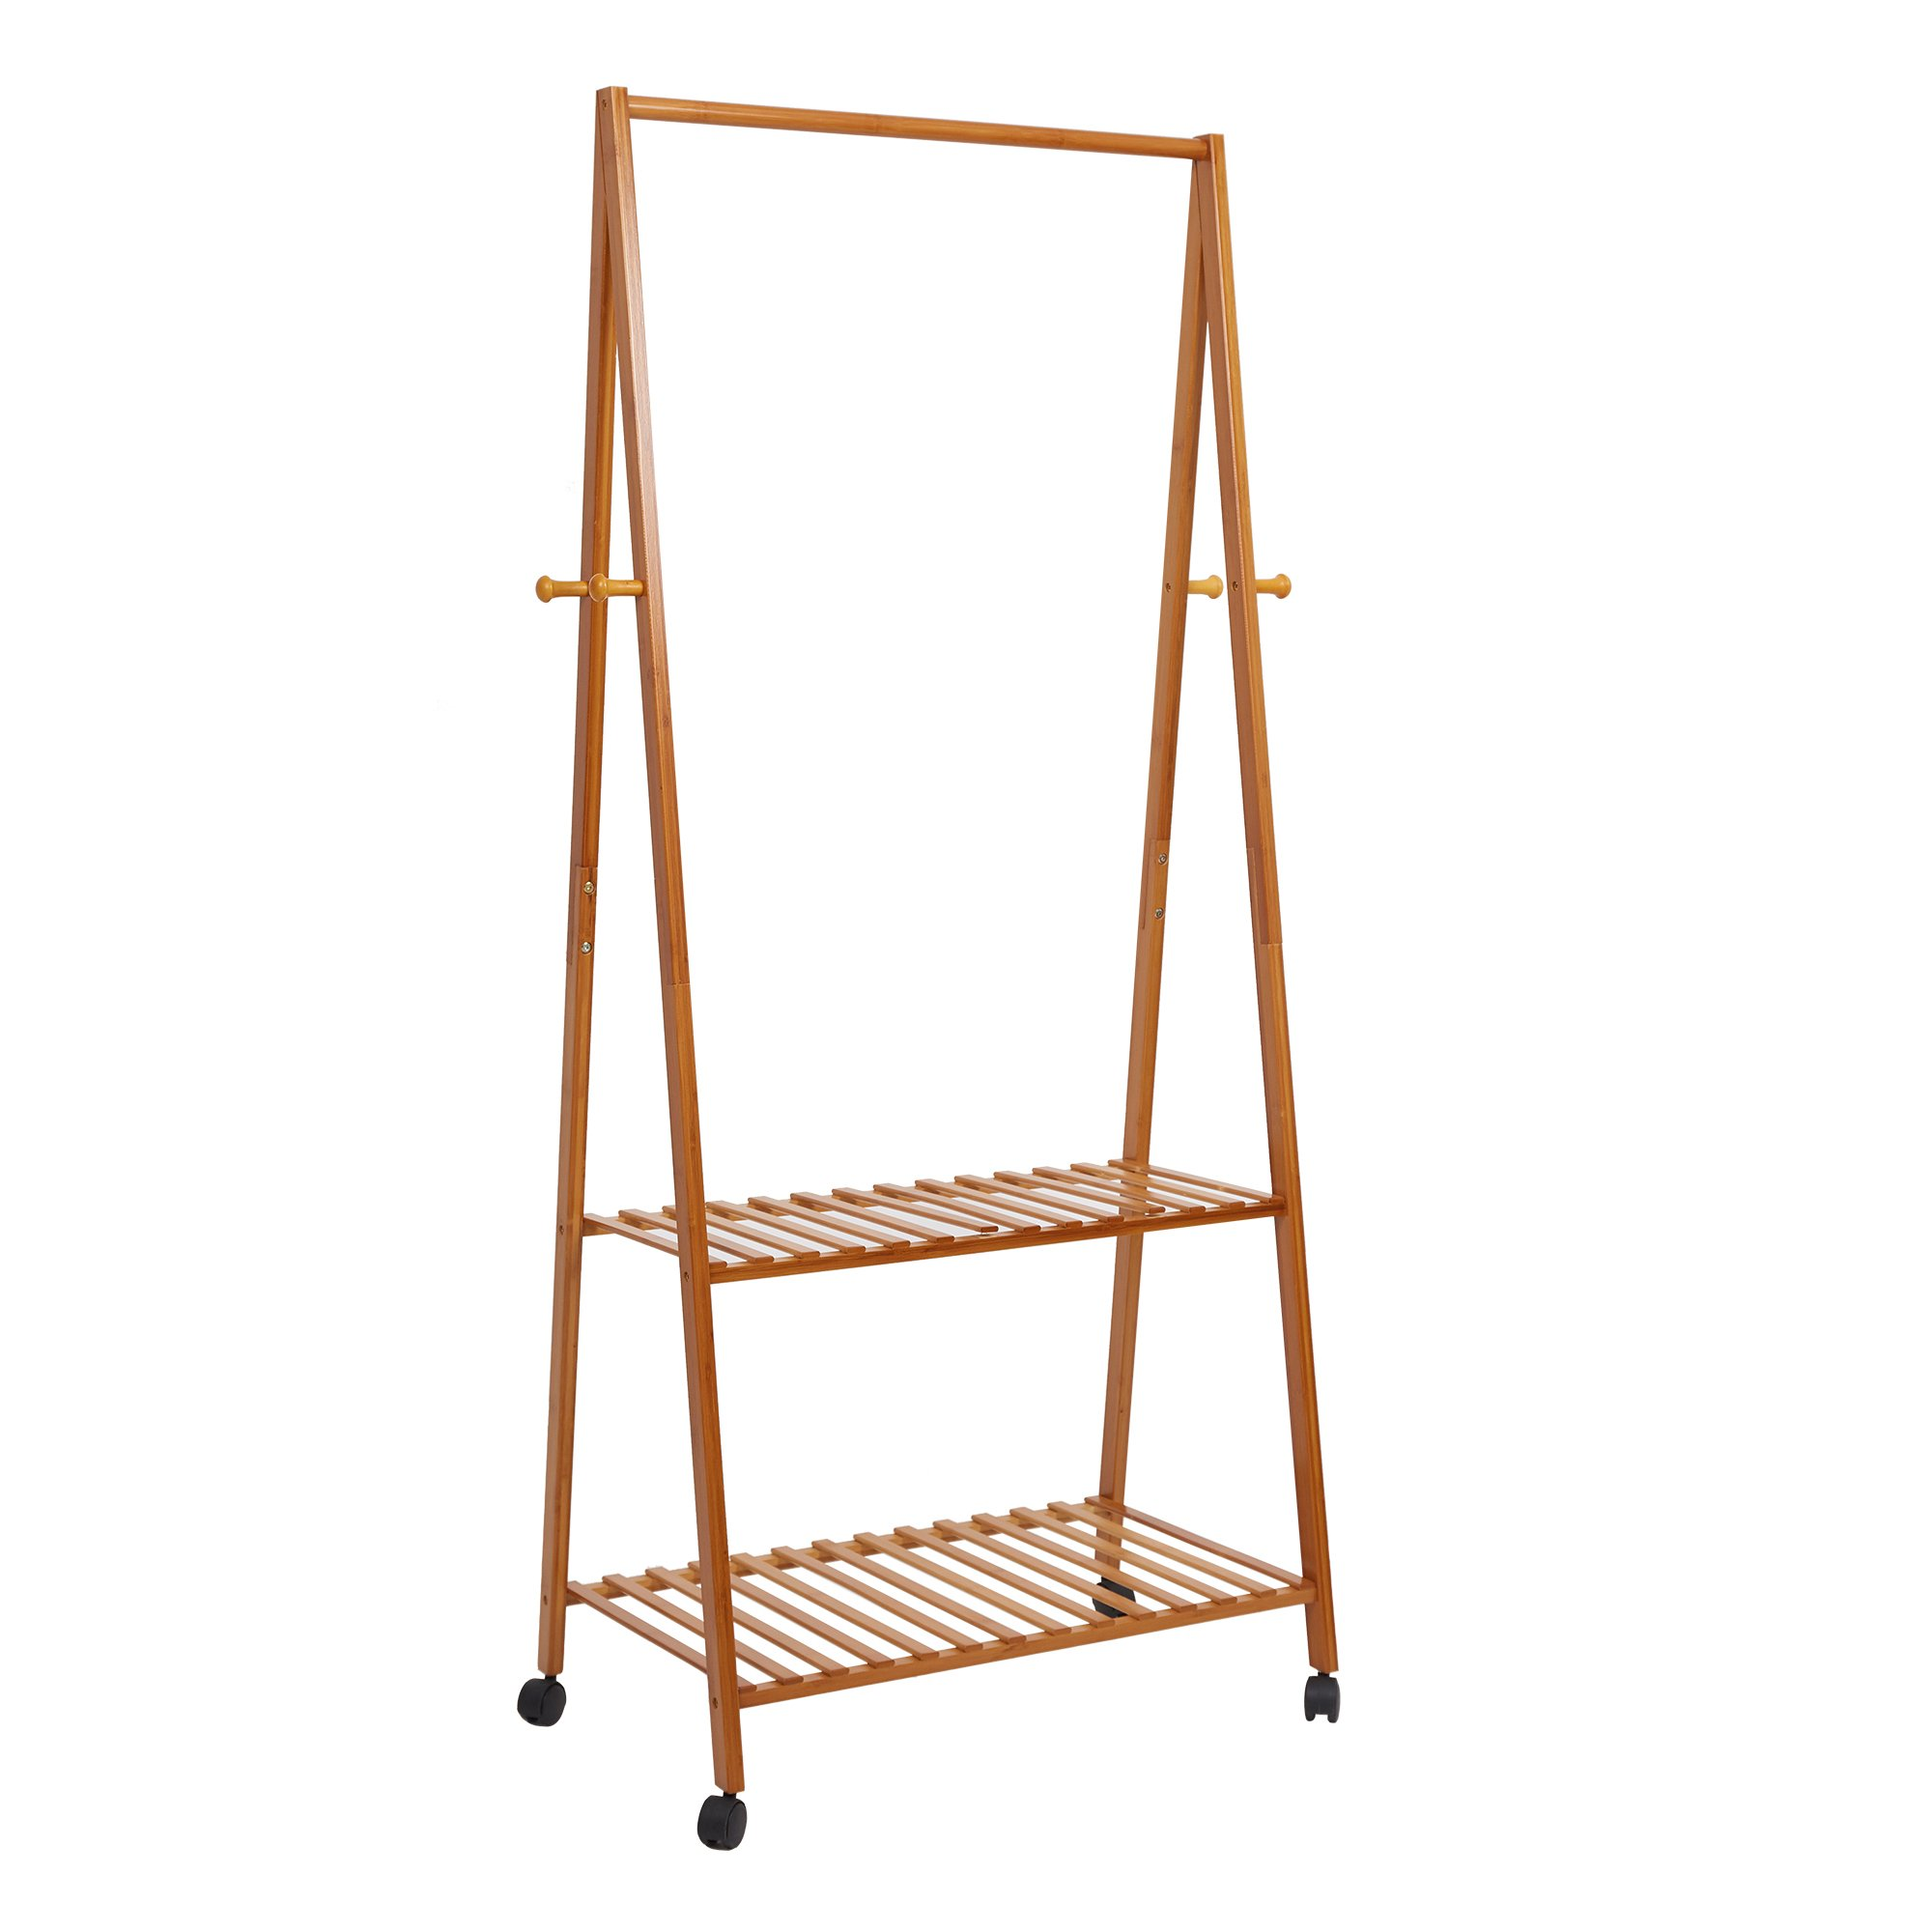 Lucky Tree Bamboo Garment Clothes Rack on Wheels Entryway Hall Tree 4 Coat Hooks 2-Tire Storage Shelves Wood Rack Stand for Laundry Guest Room